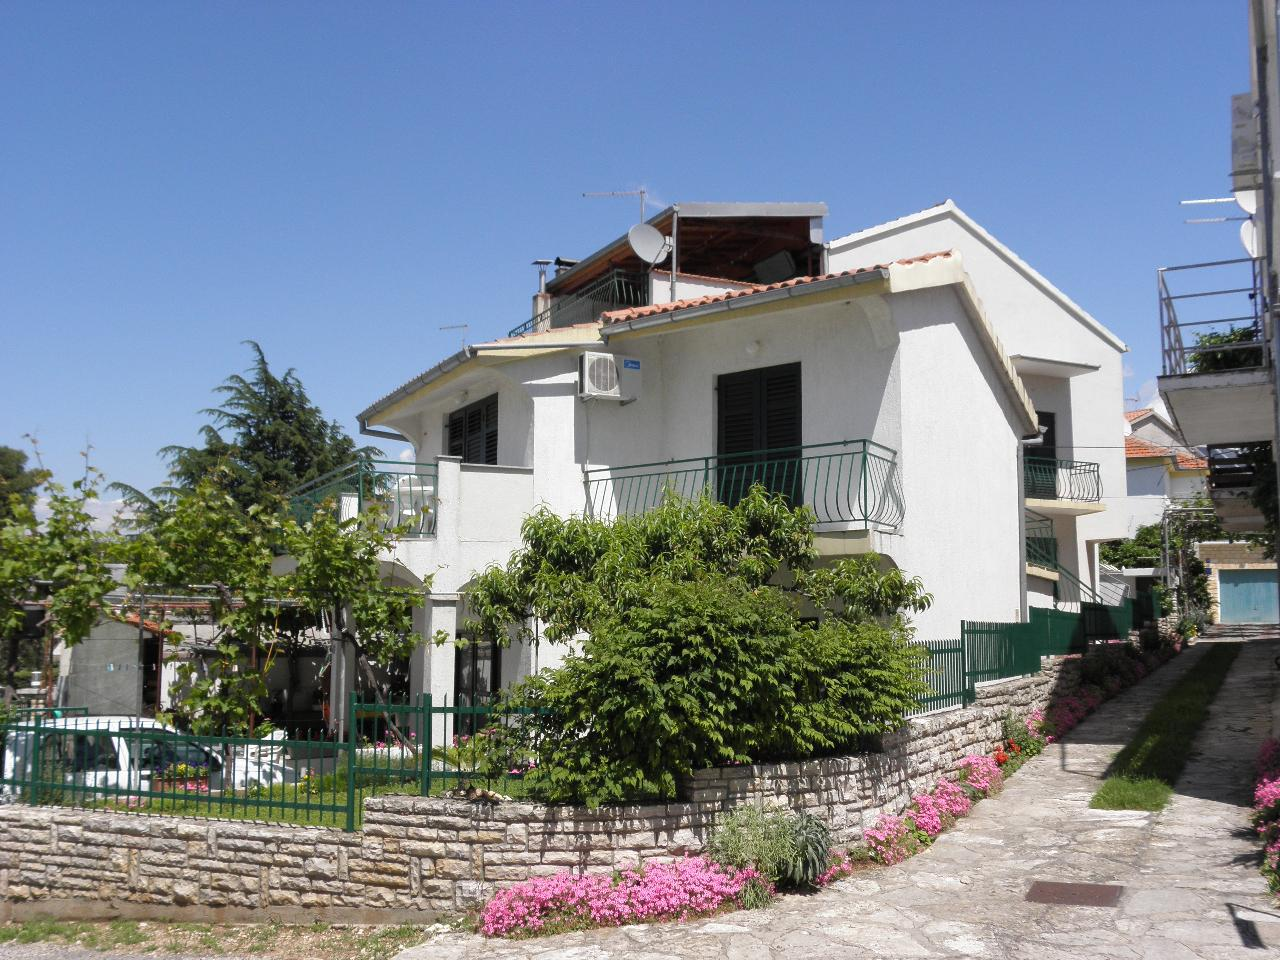 2568 - Biograd - Apartments Croatia